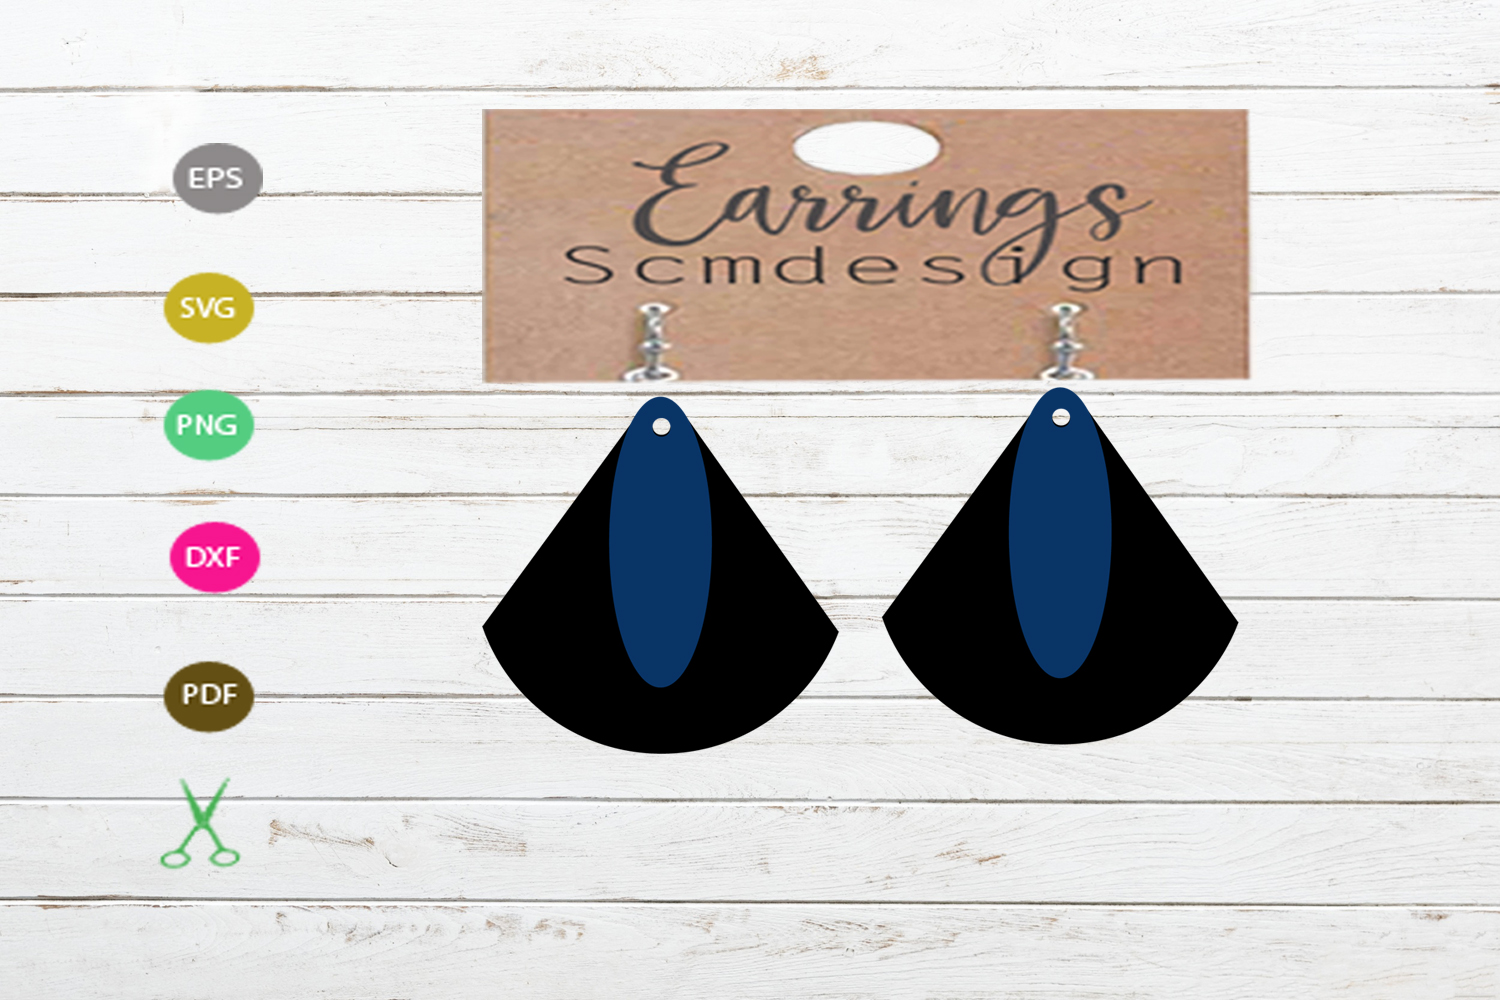 Download Free Earrings Svg Earrings Template Earrings Creative Fabrica for Cricut Explore, Silhouette and other cutting machines.